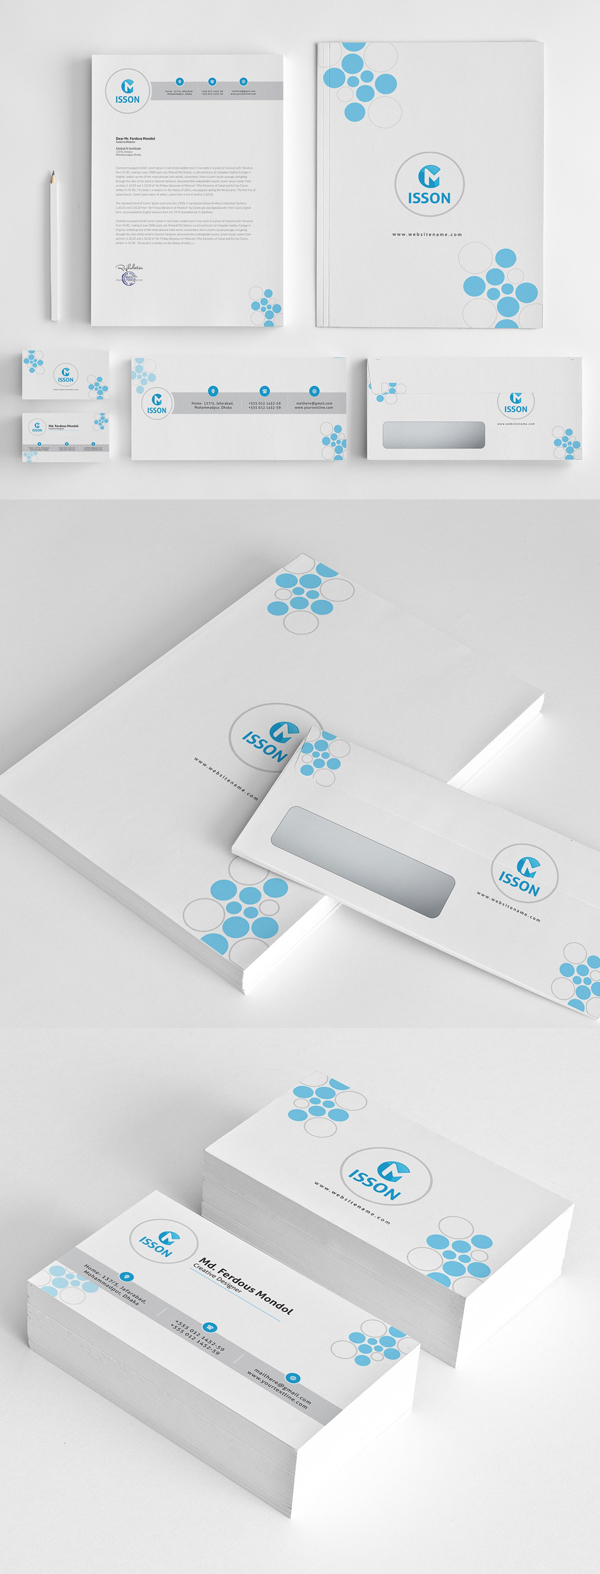 Modern Business Branding / Stationery Templates Design - 9